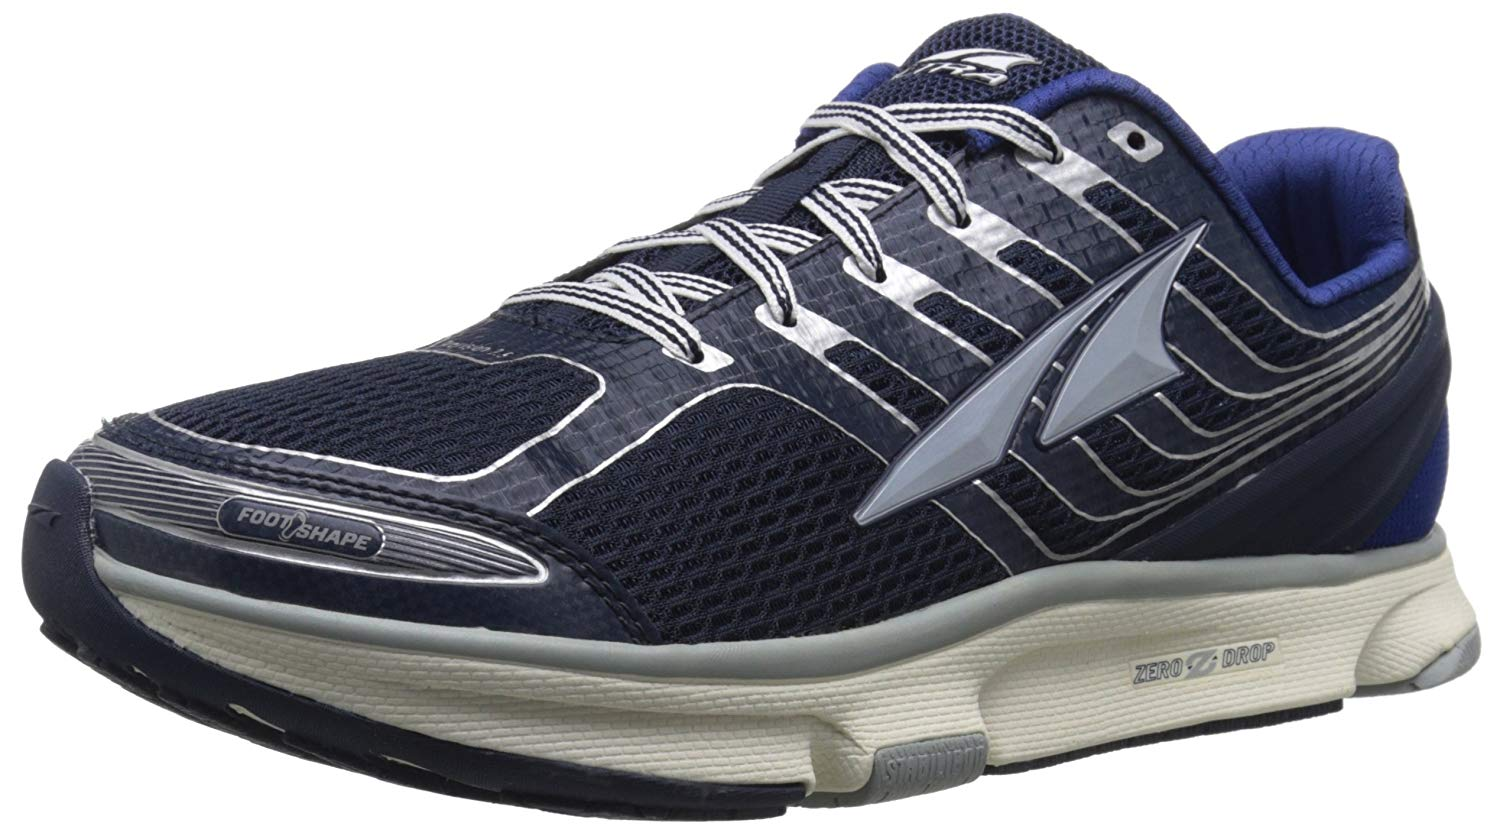 buy online cb48b 6c2a6 Details about Altra Mens Provision 2.5 Zero Drop Running Shoes Trainers  Sneaker Navy